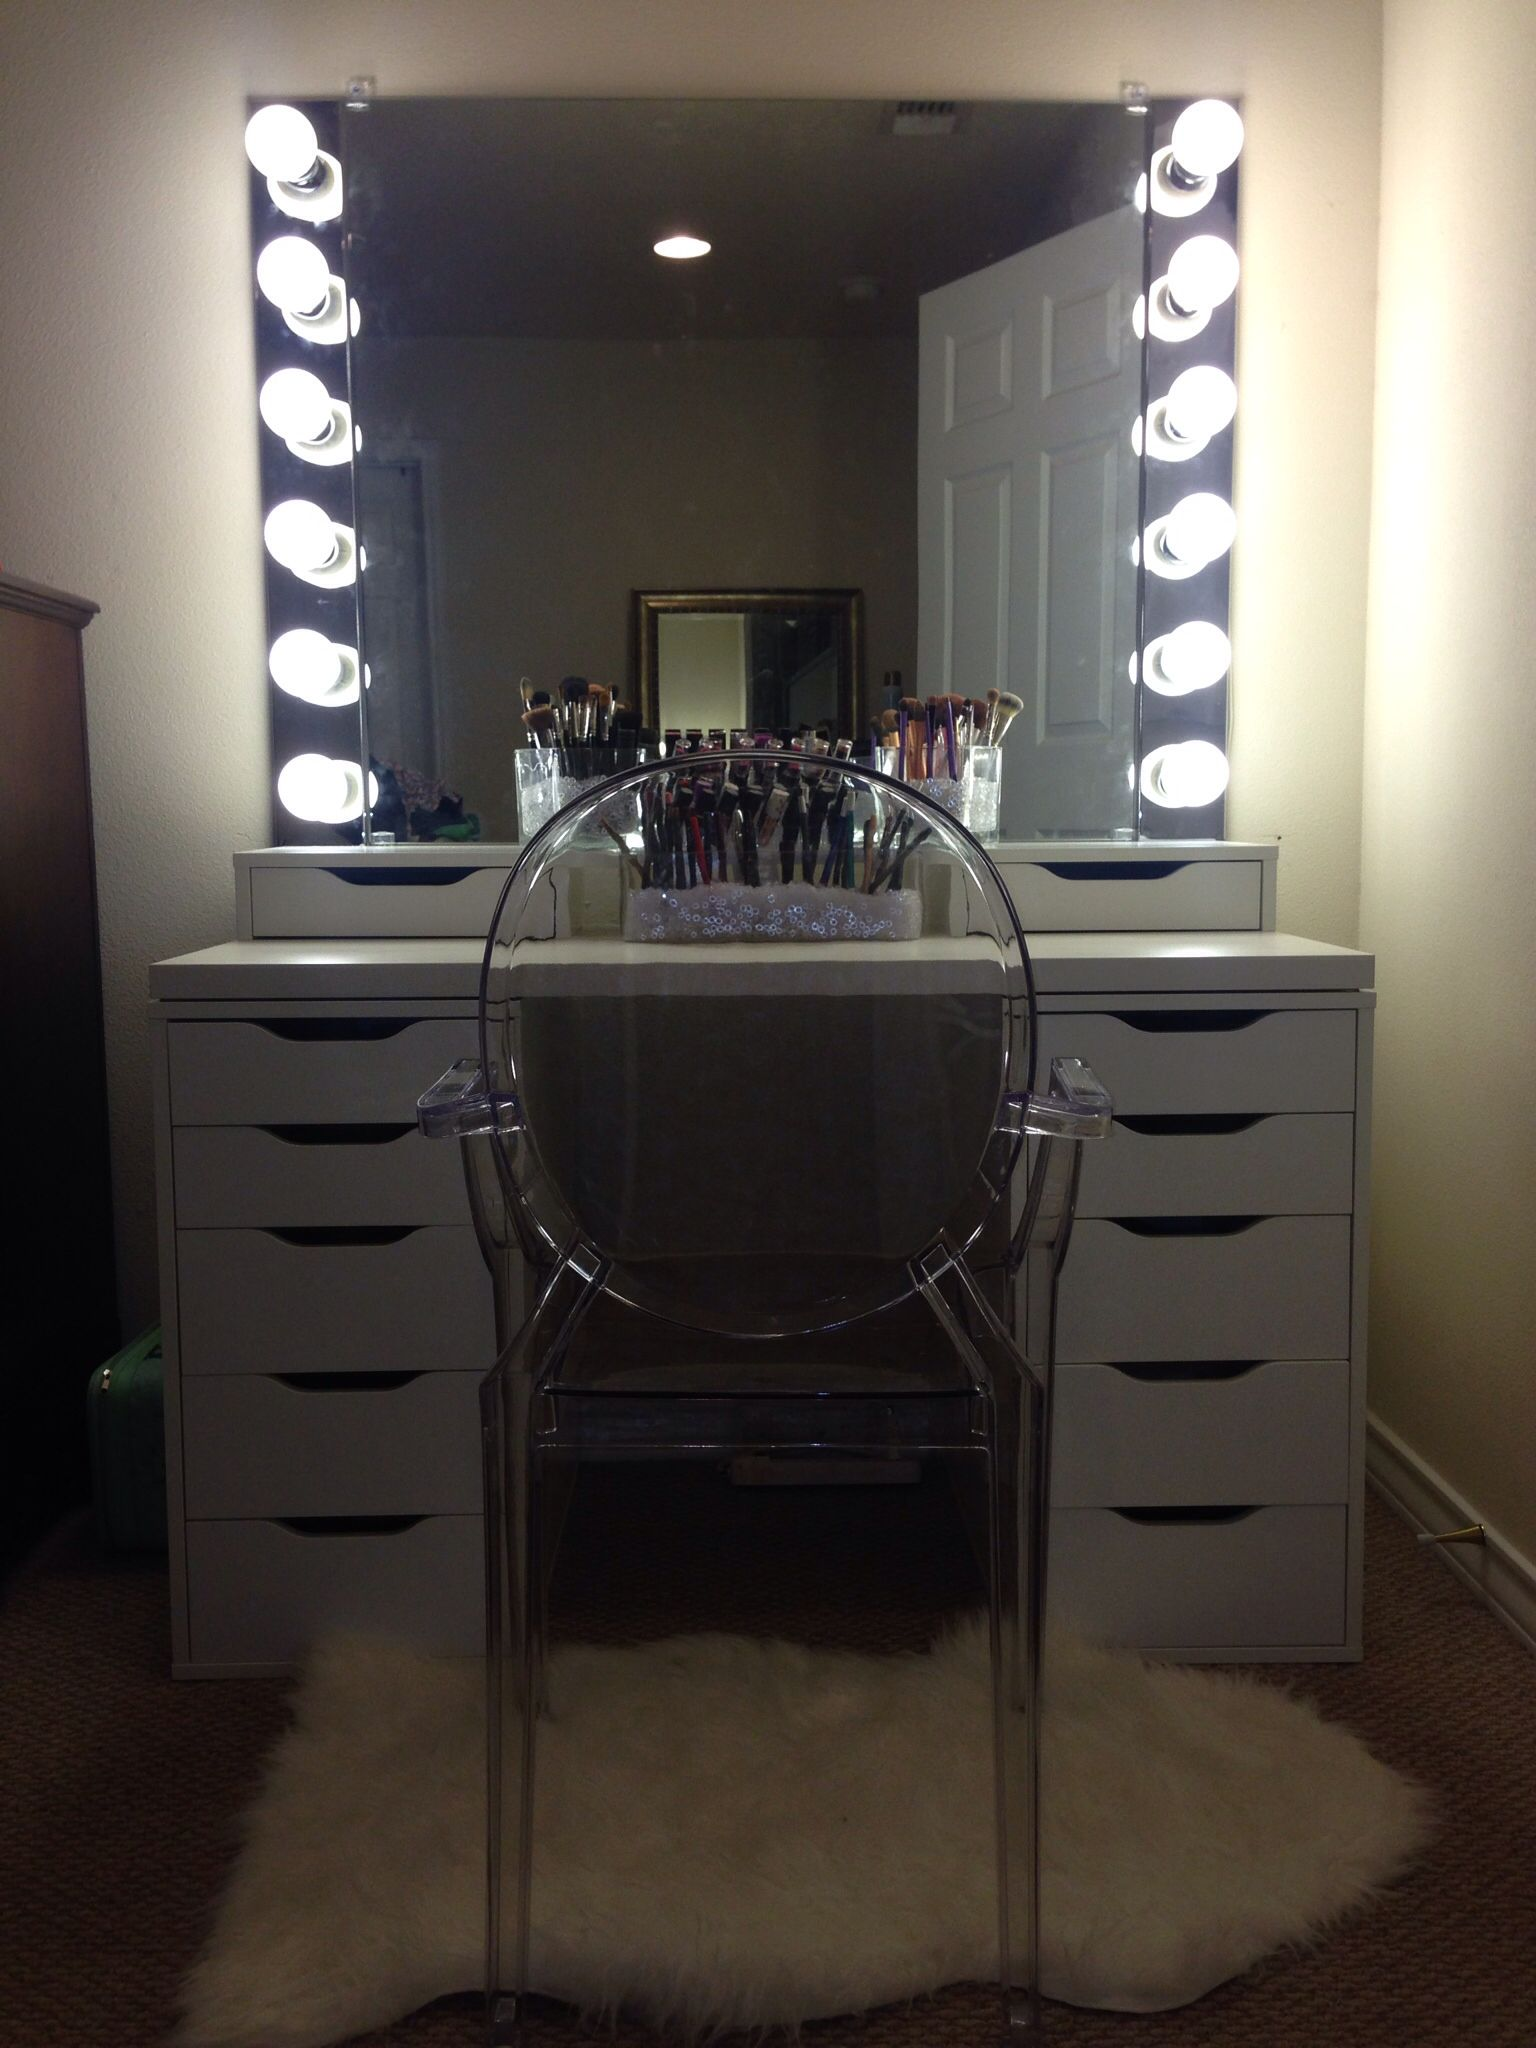 Diy Ikea Vanity With Lights Mineee Make Up Storage